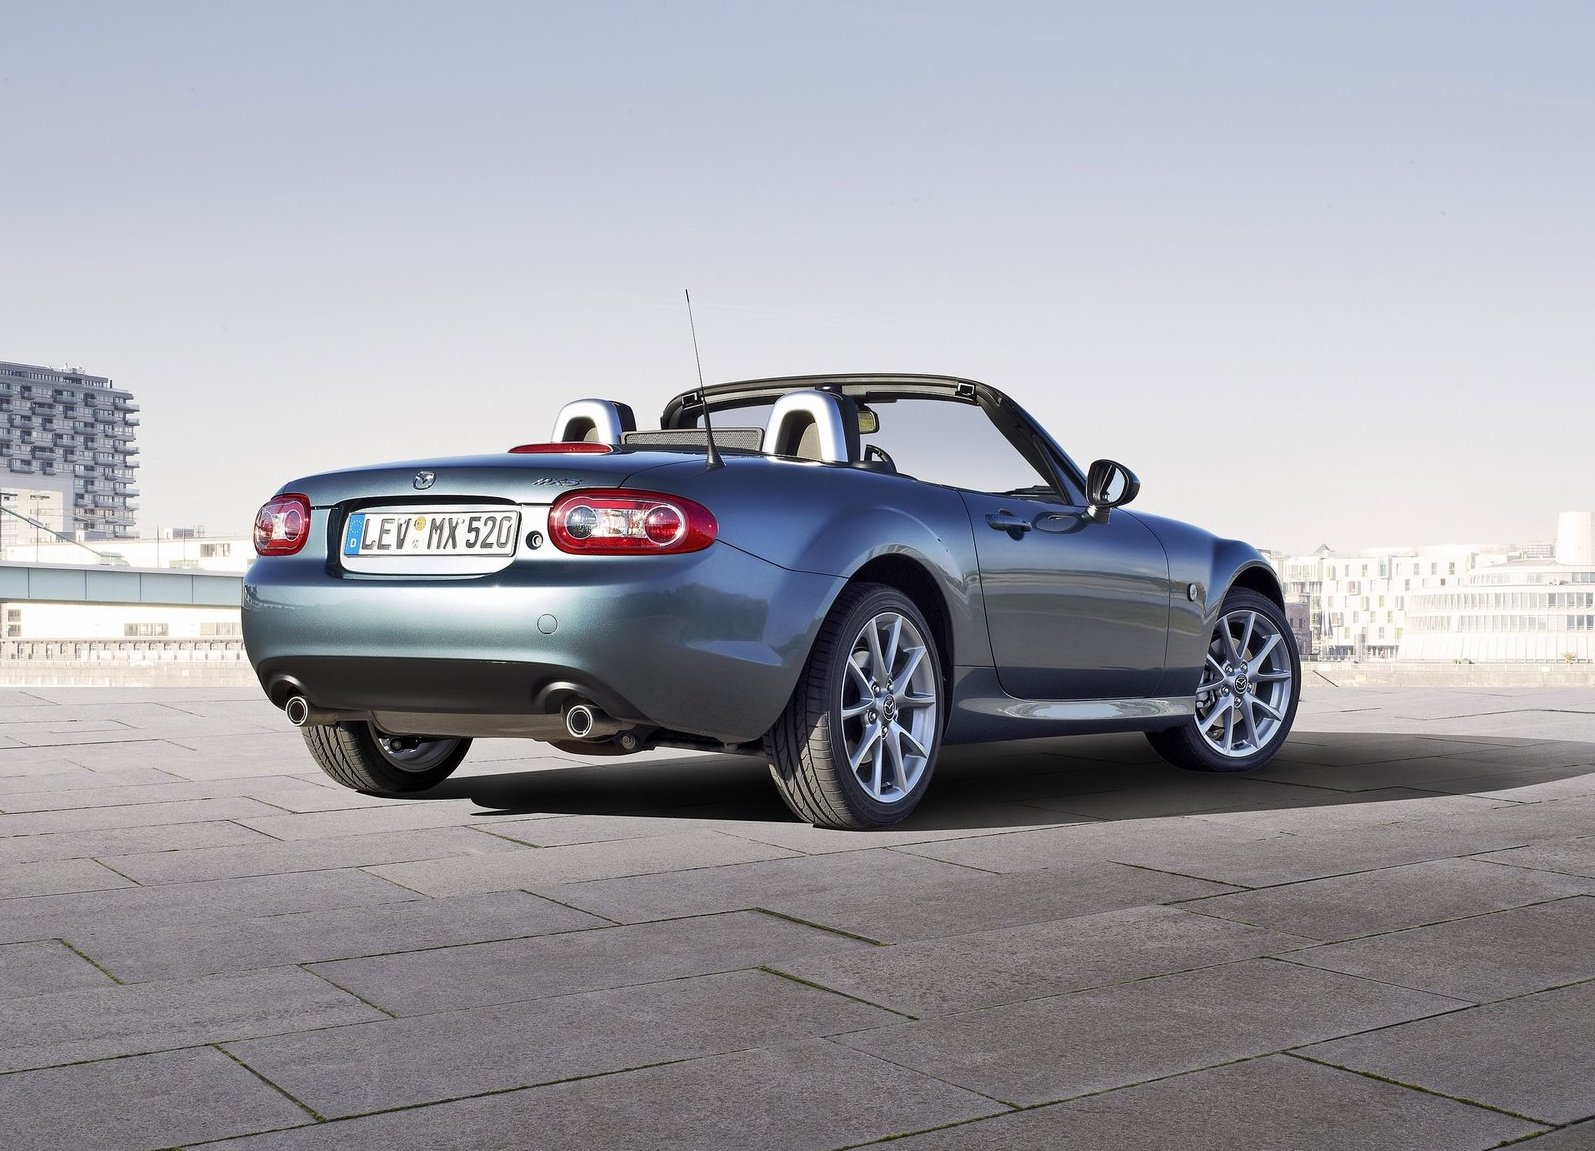 2013 Mazda MX-5 Miata 3/4 front driving low